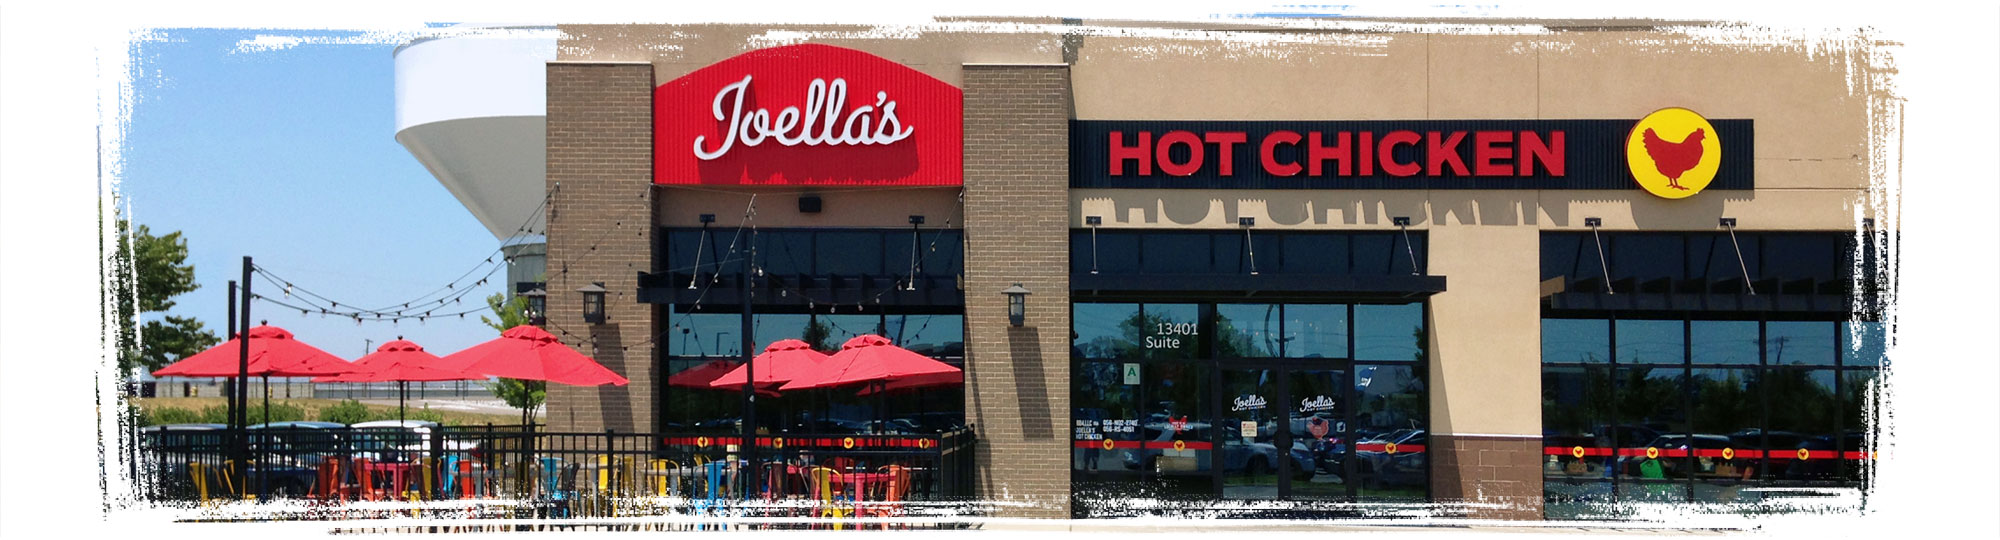 Joella's Middletown restaurant exterior in Louisville, Kentucky